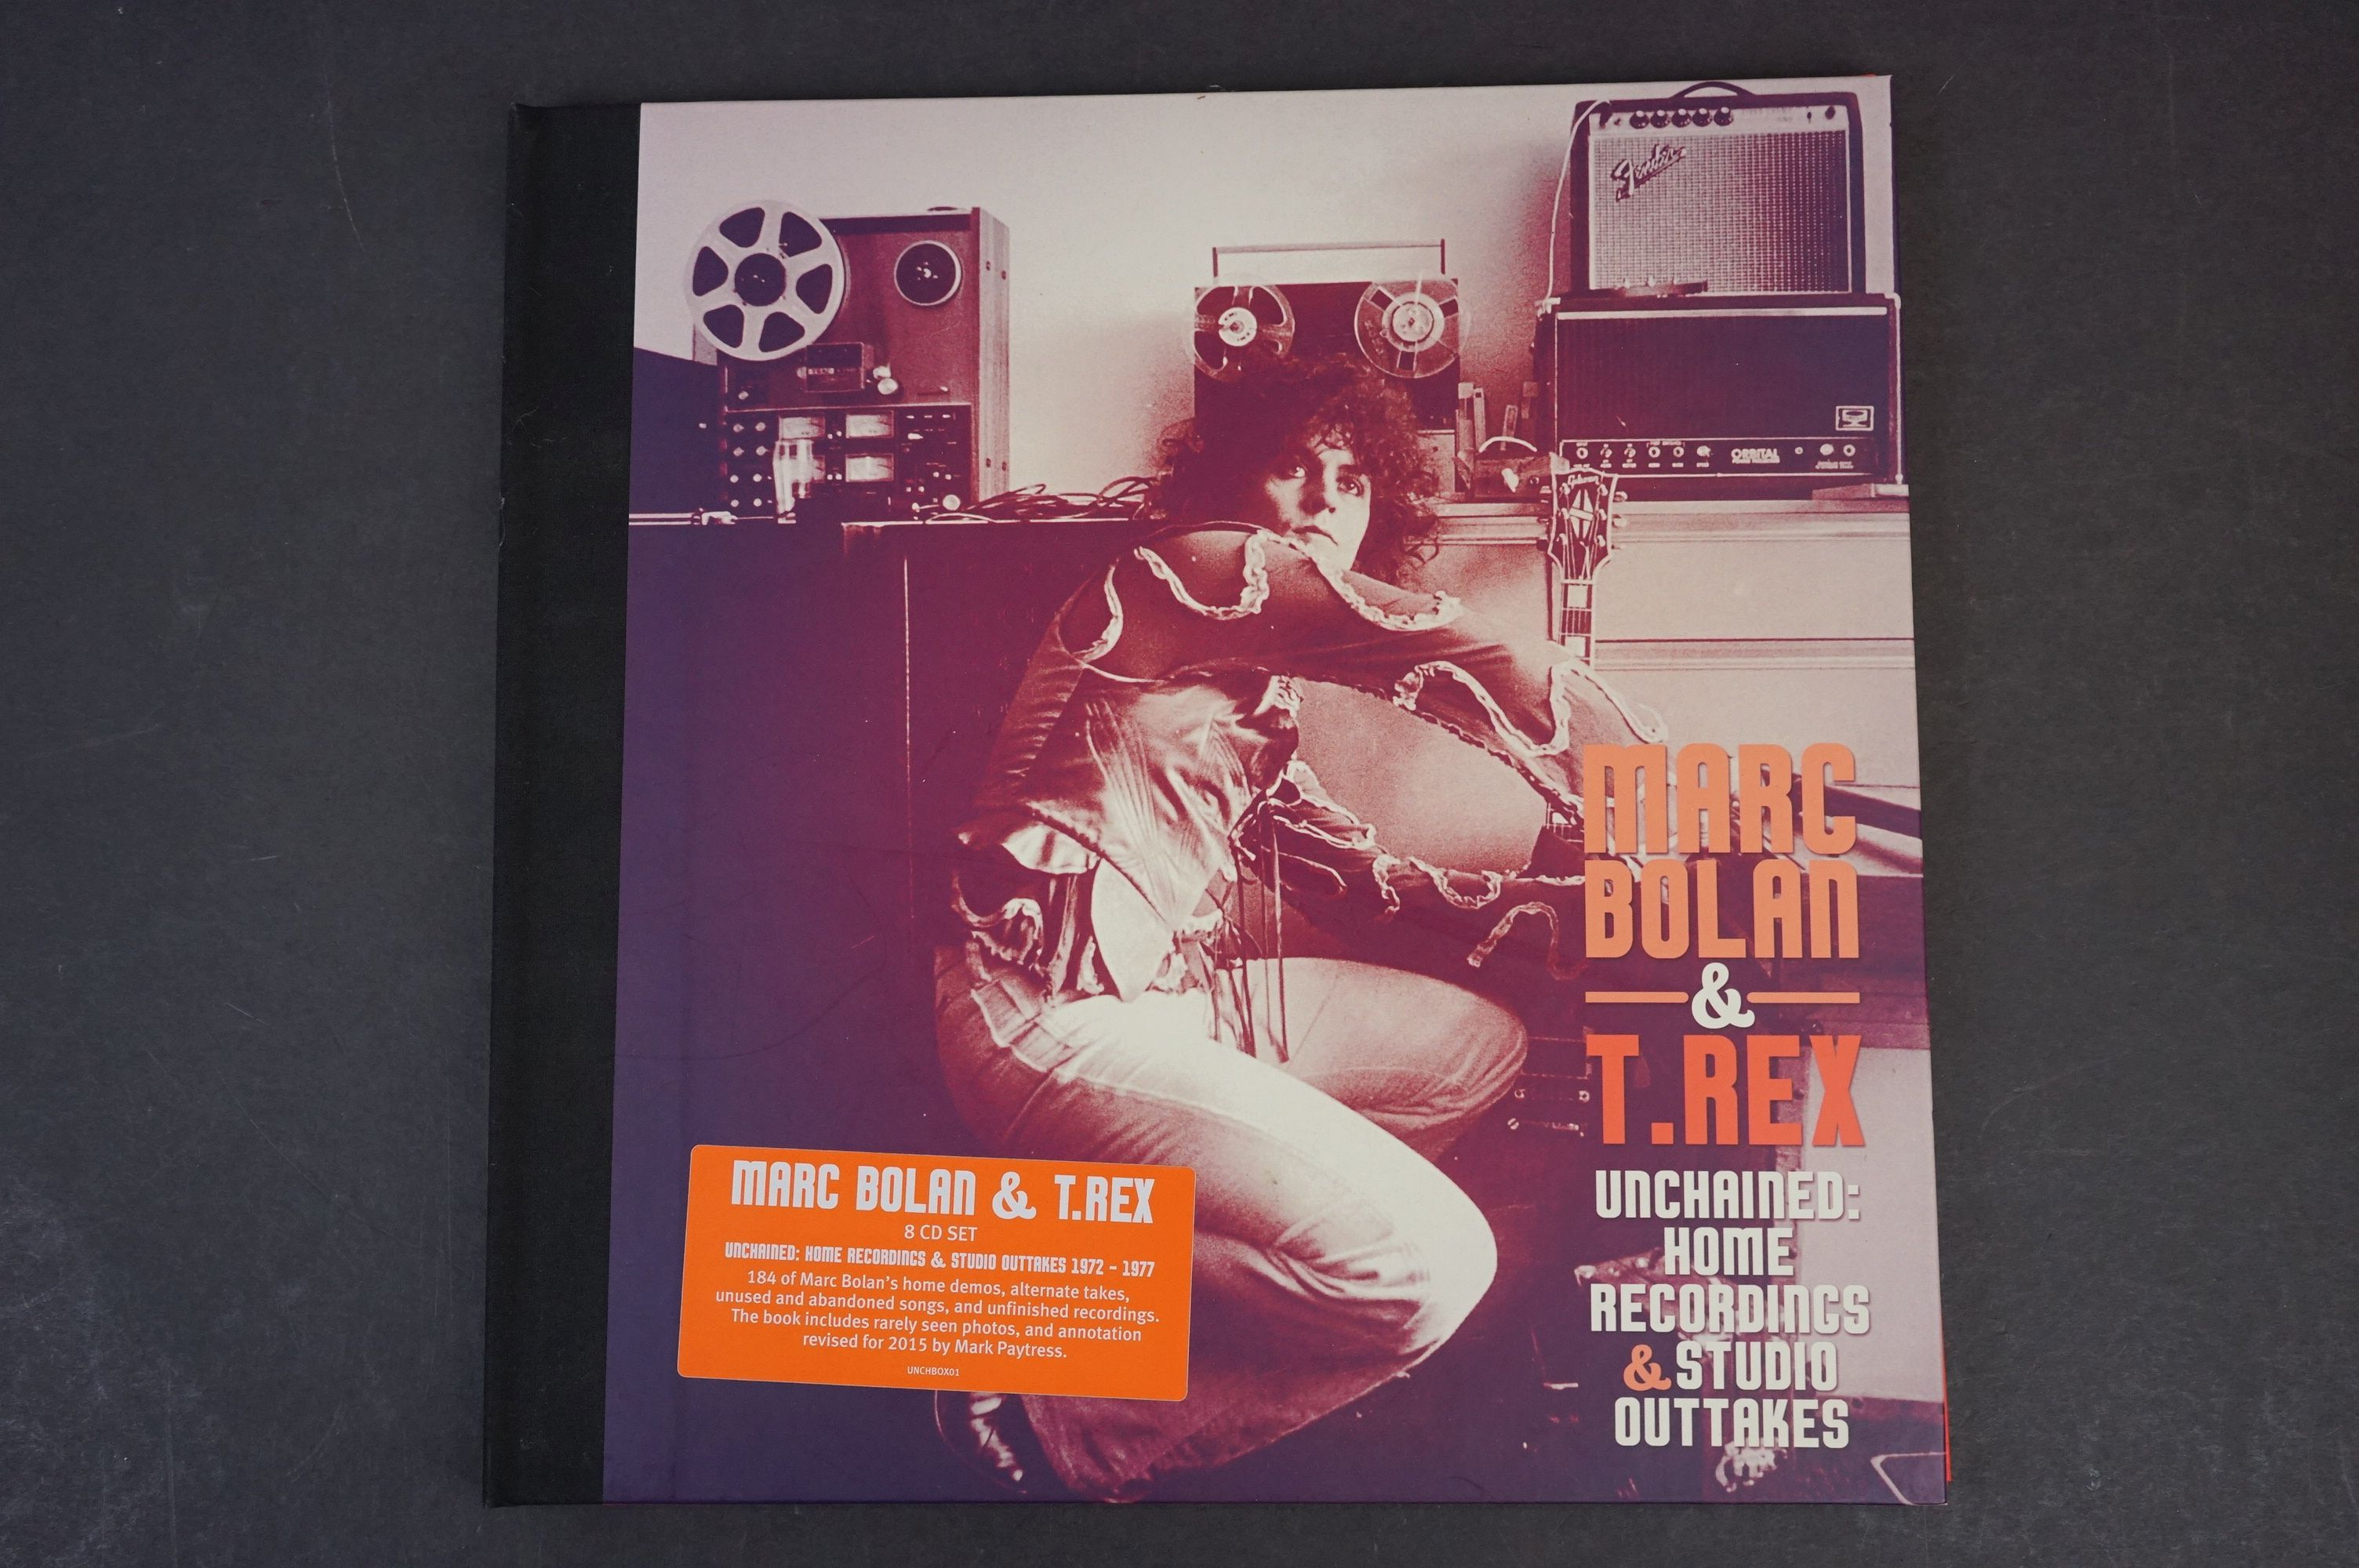 CD - Marc Bolan & T Rex Unchained Home Recordings & Studio Outtakes 8 CD Set UNCHBOX01 ex